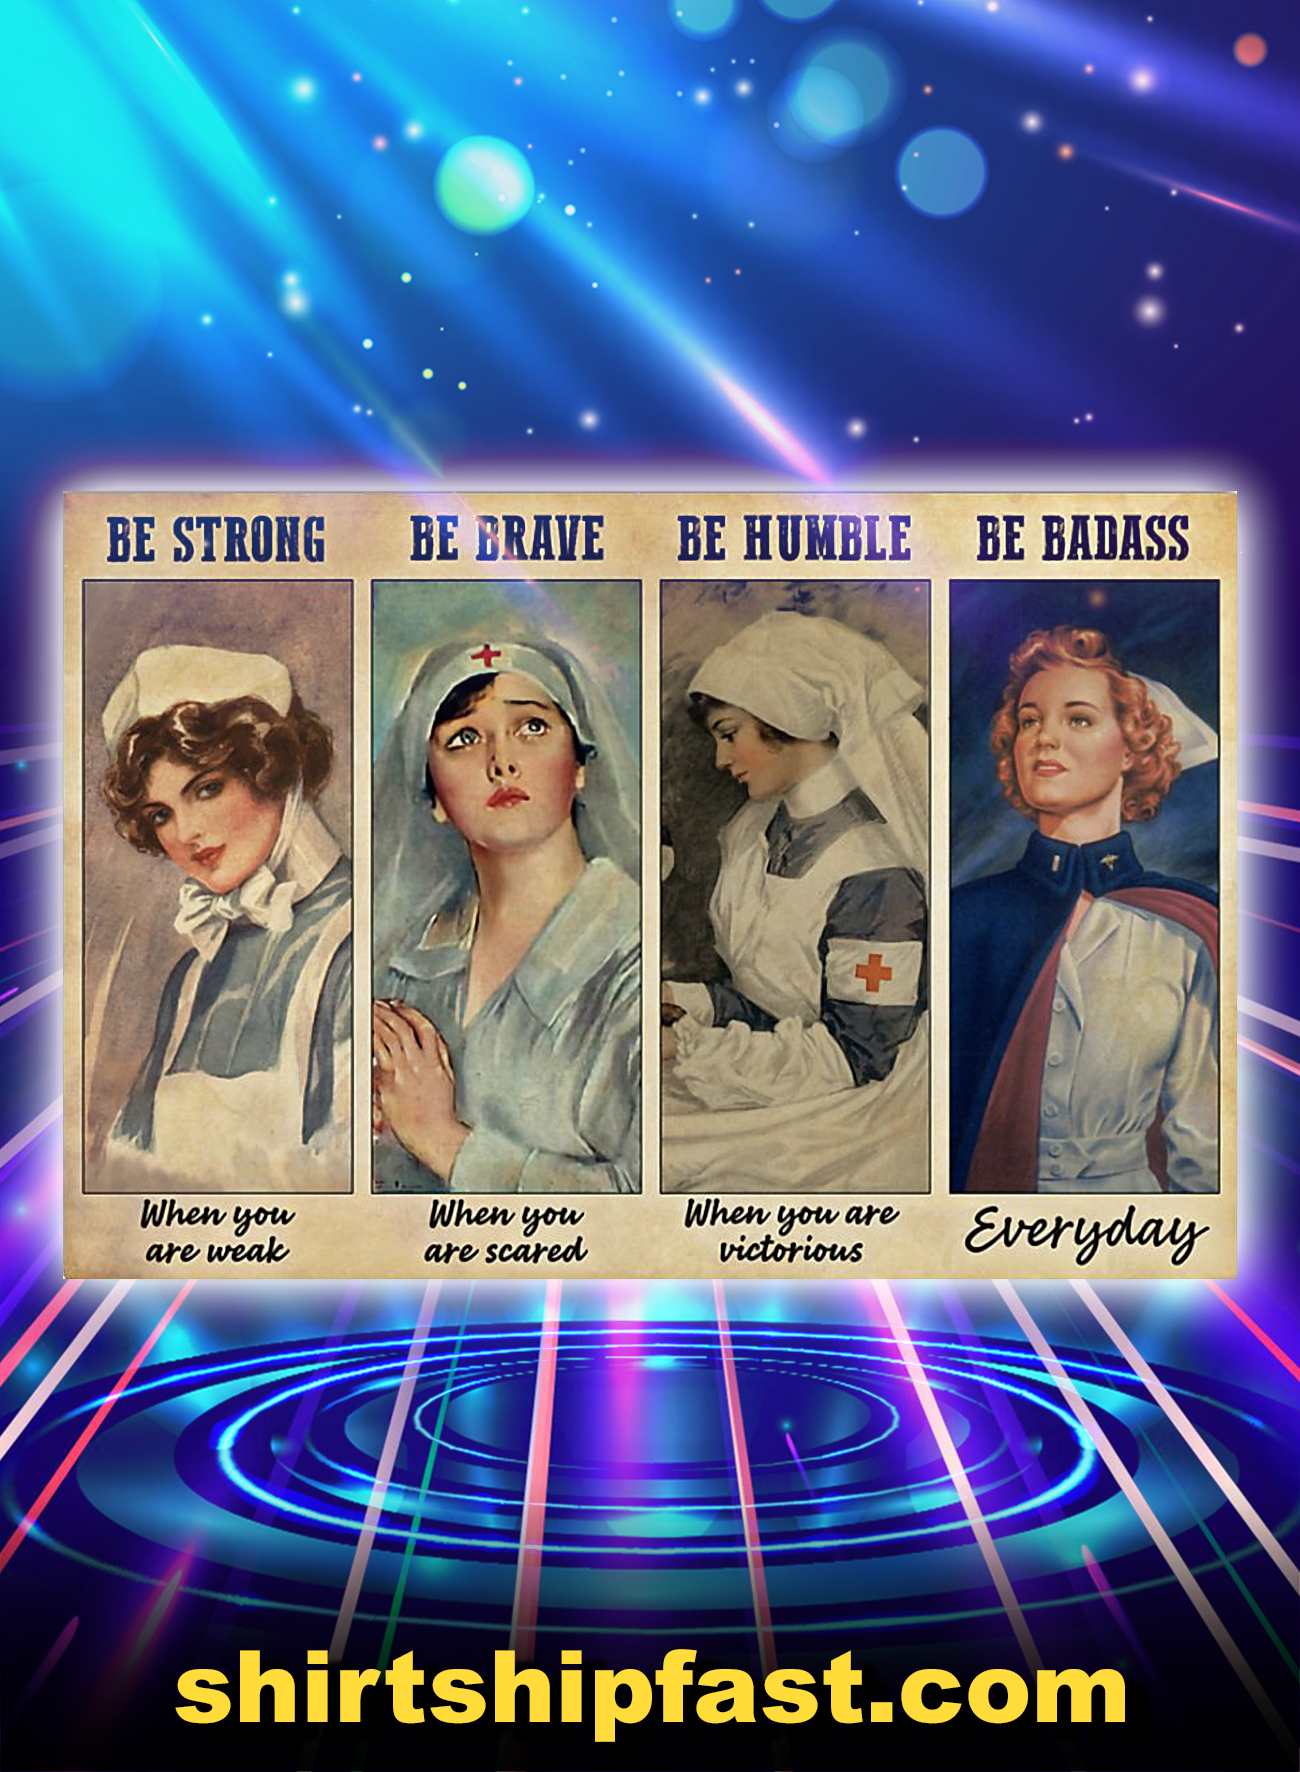 Yoga girl Nurses be strong be brave be humble be badass poster - A4